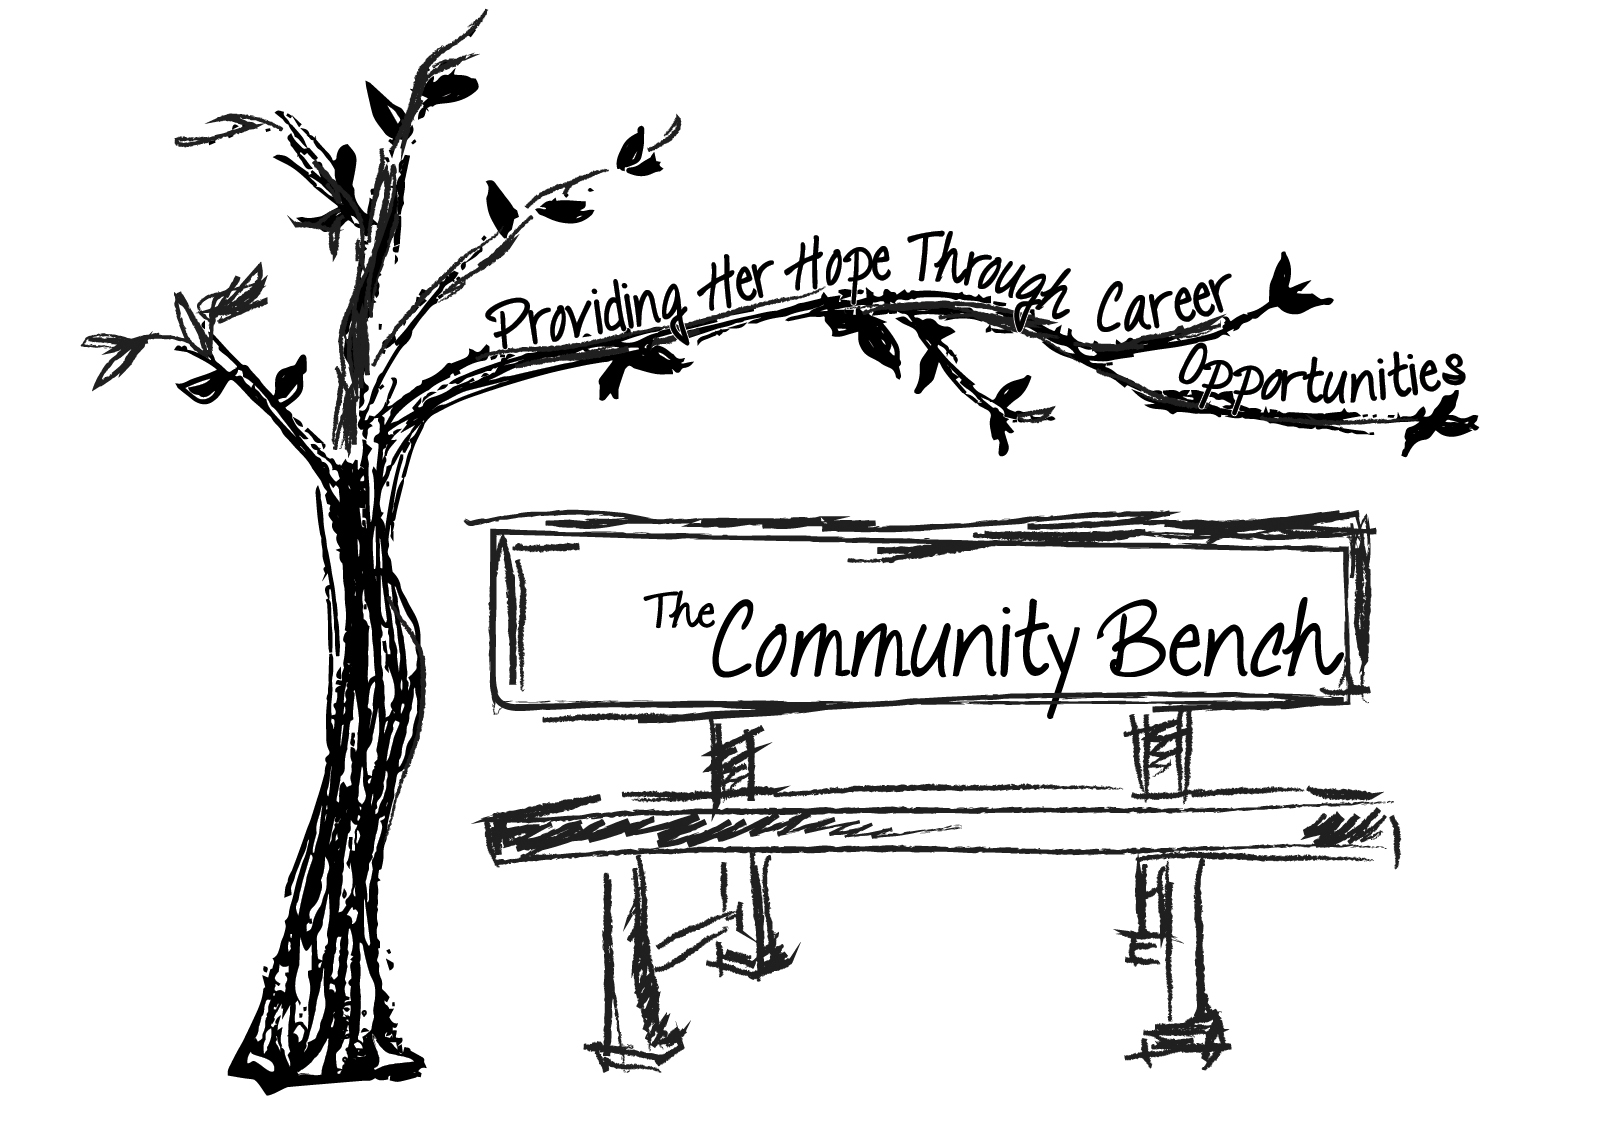 communitybench-final-logo.jpg